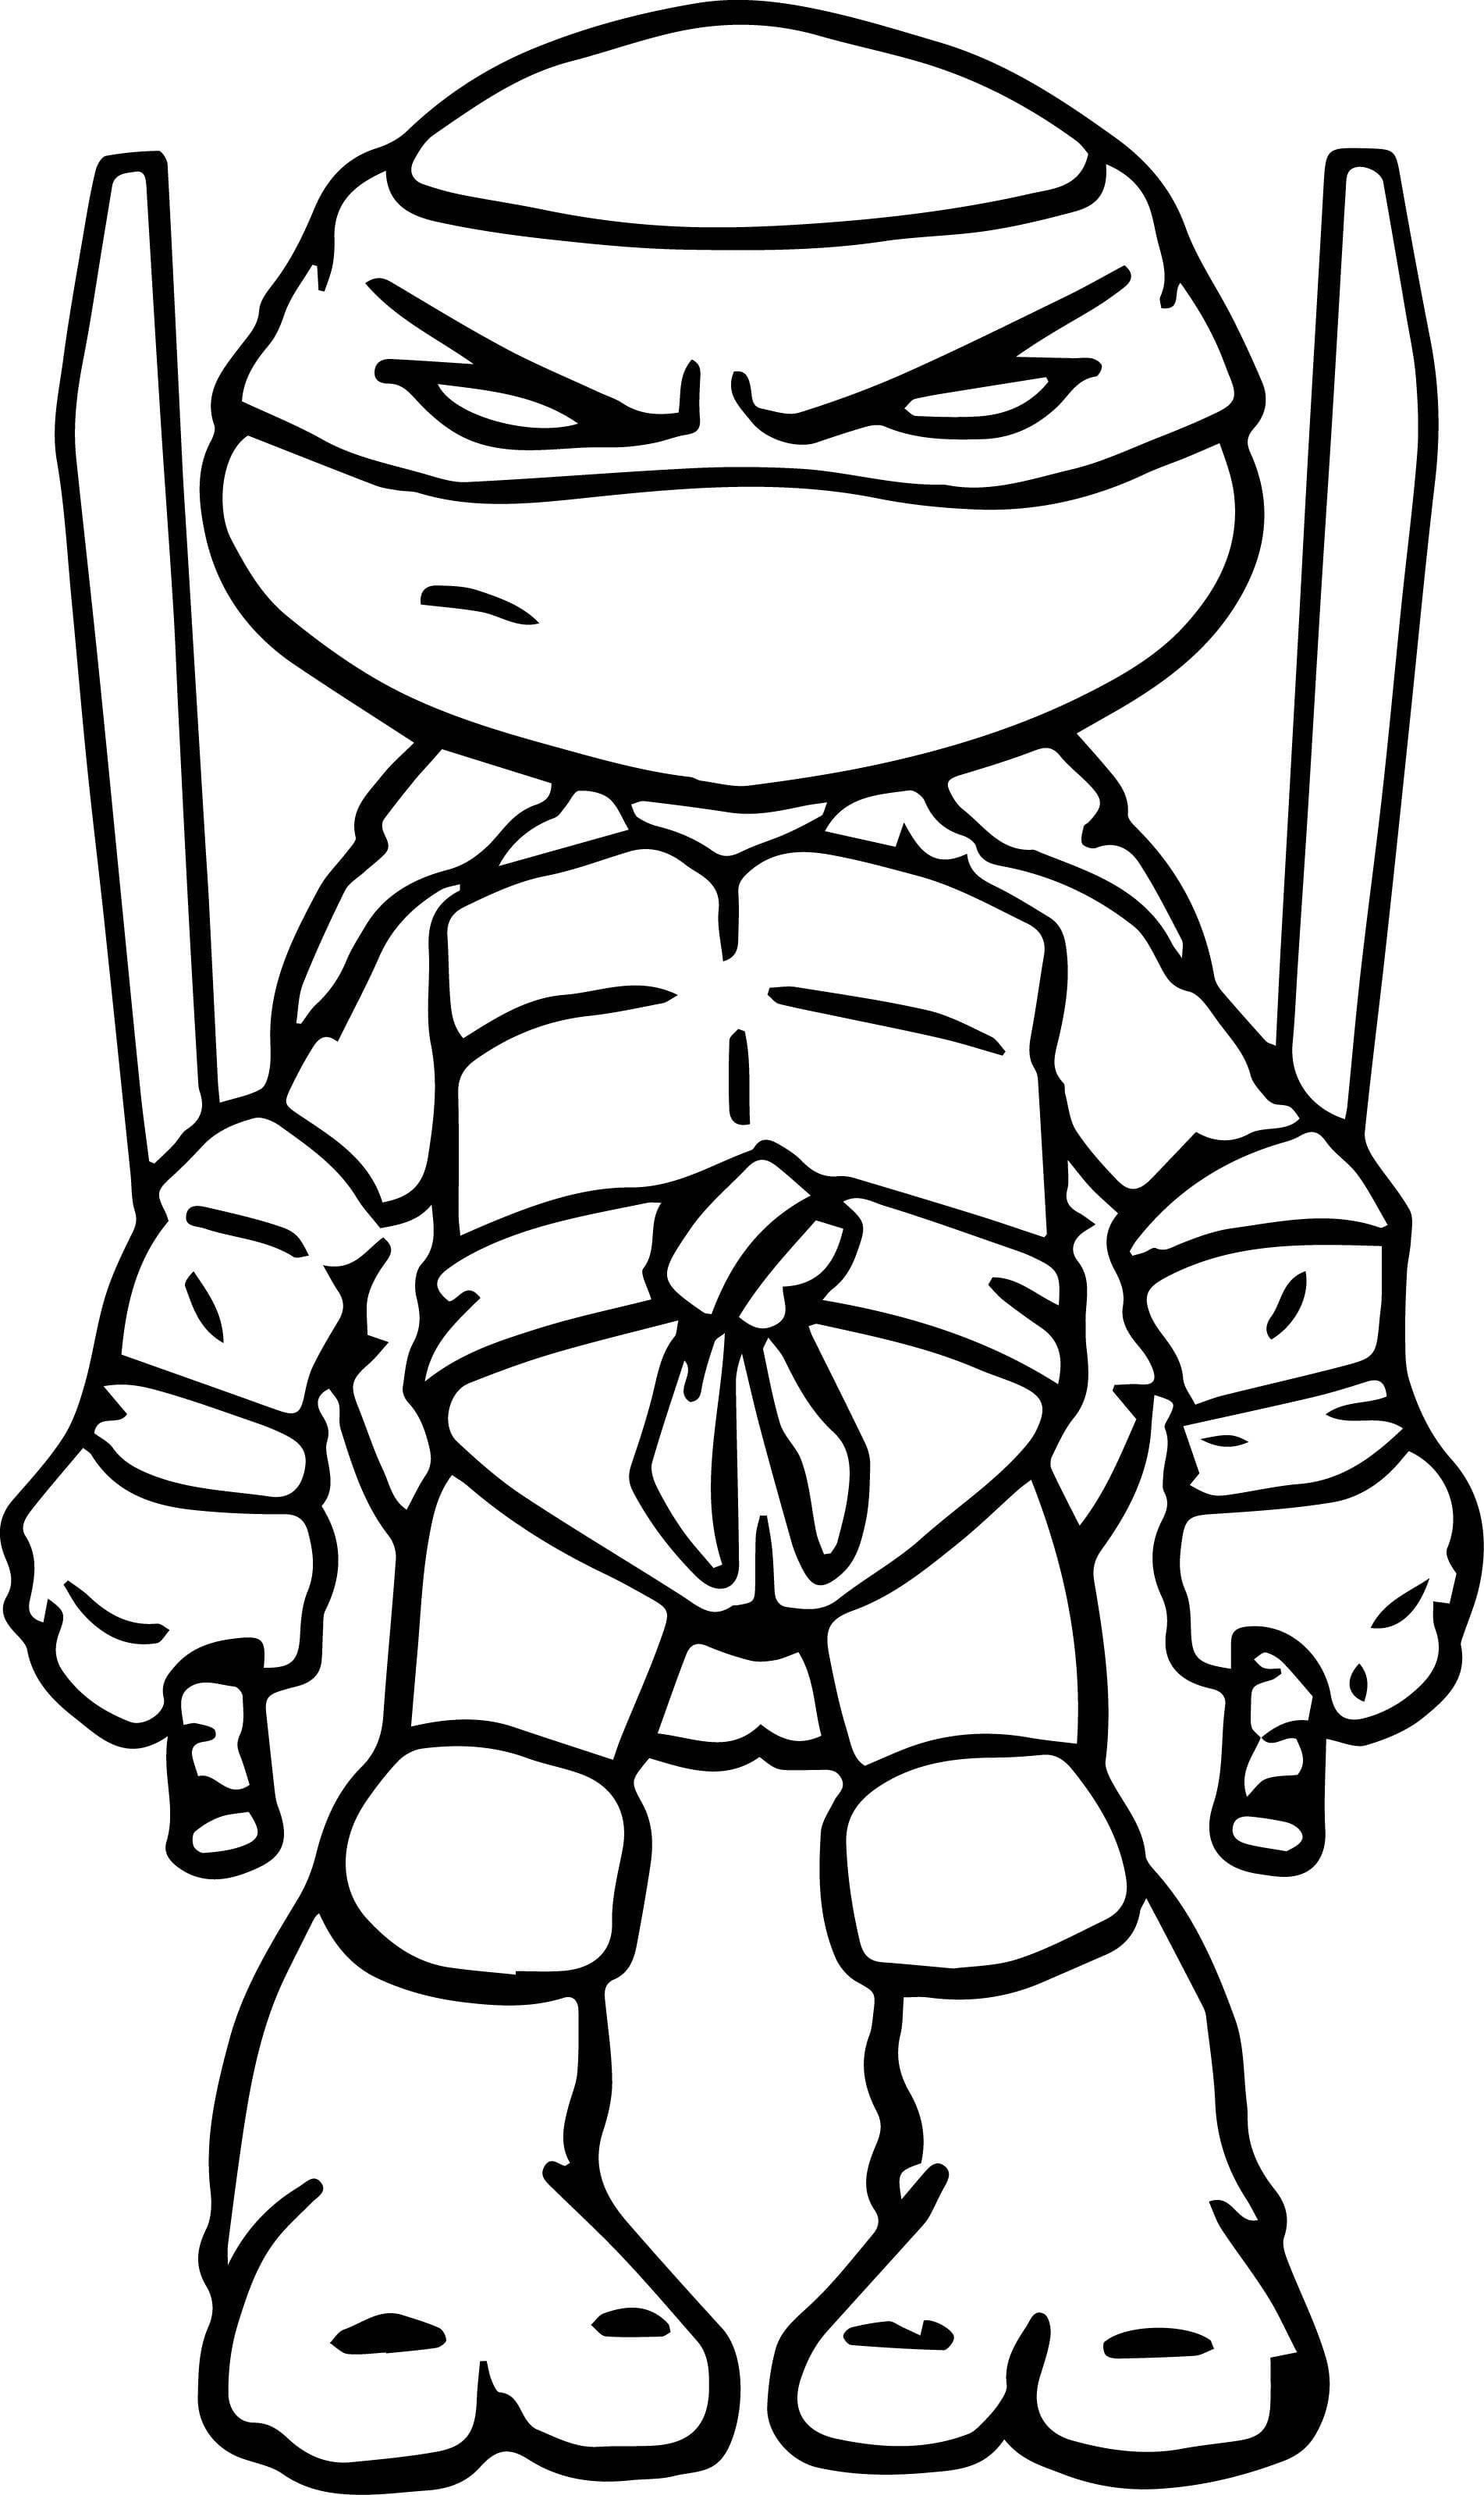 Fancy Ninja Turtles Coloring Page 24 For Free Coloring Kids With